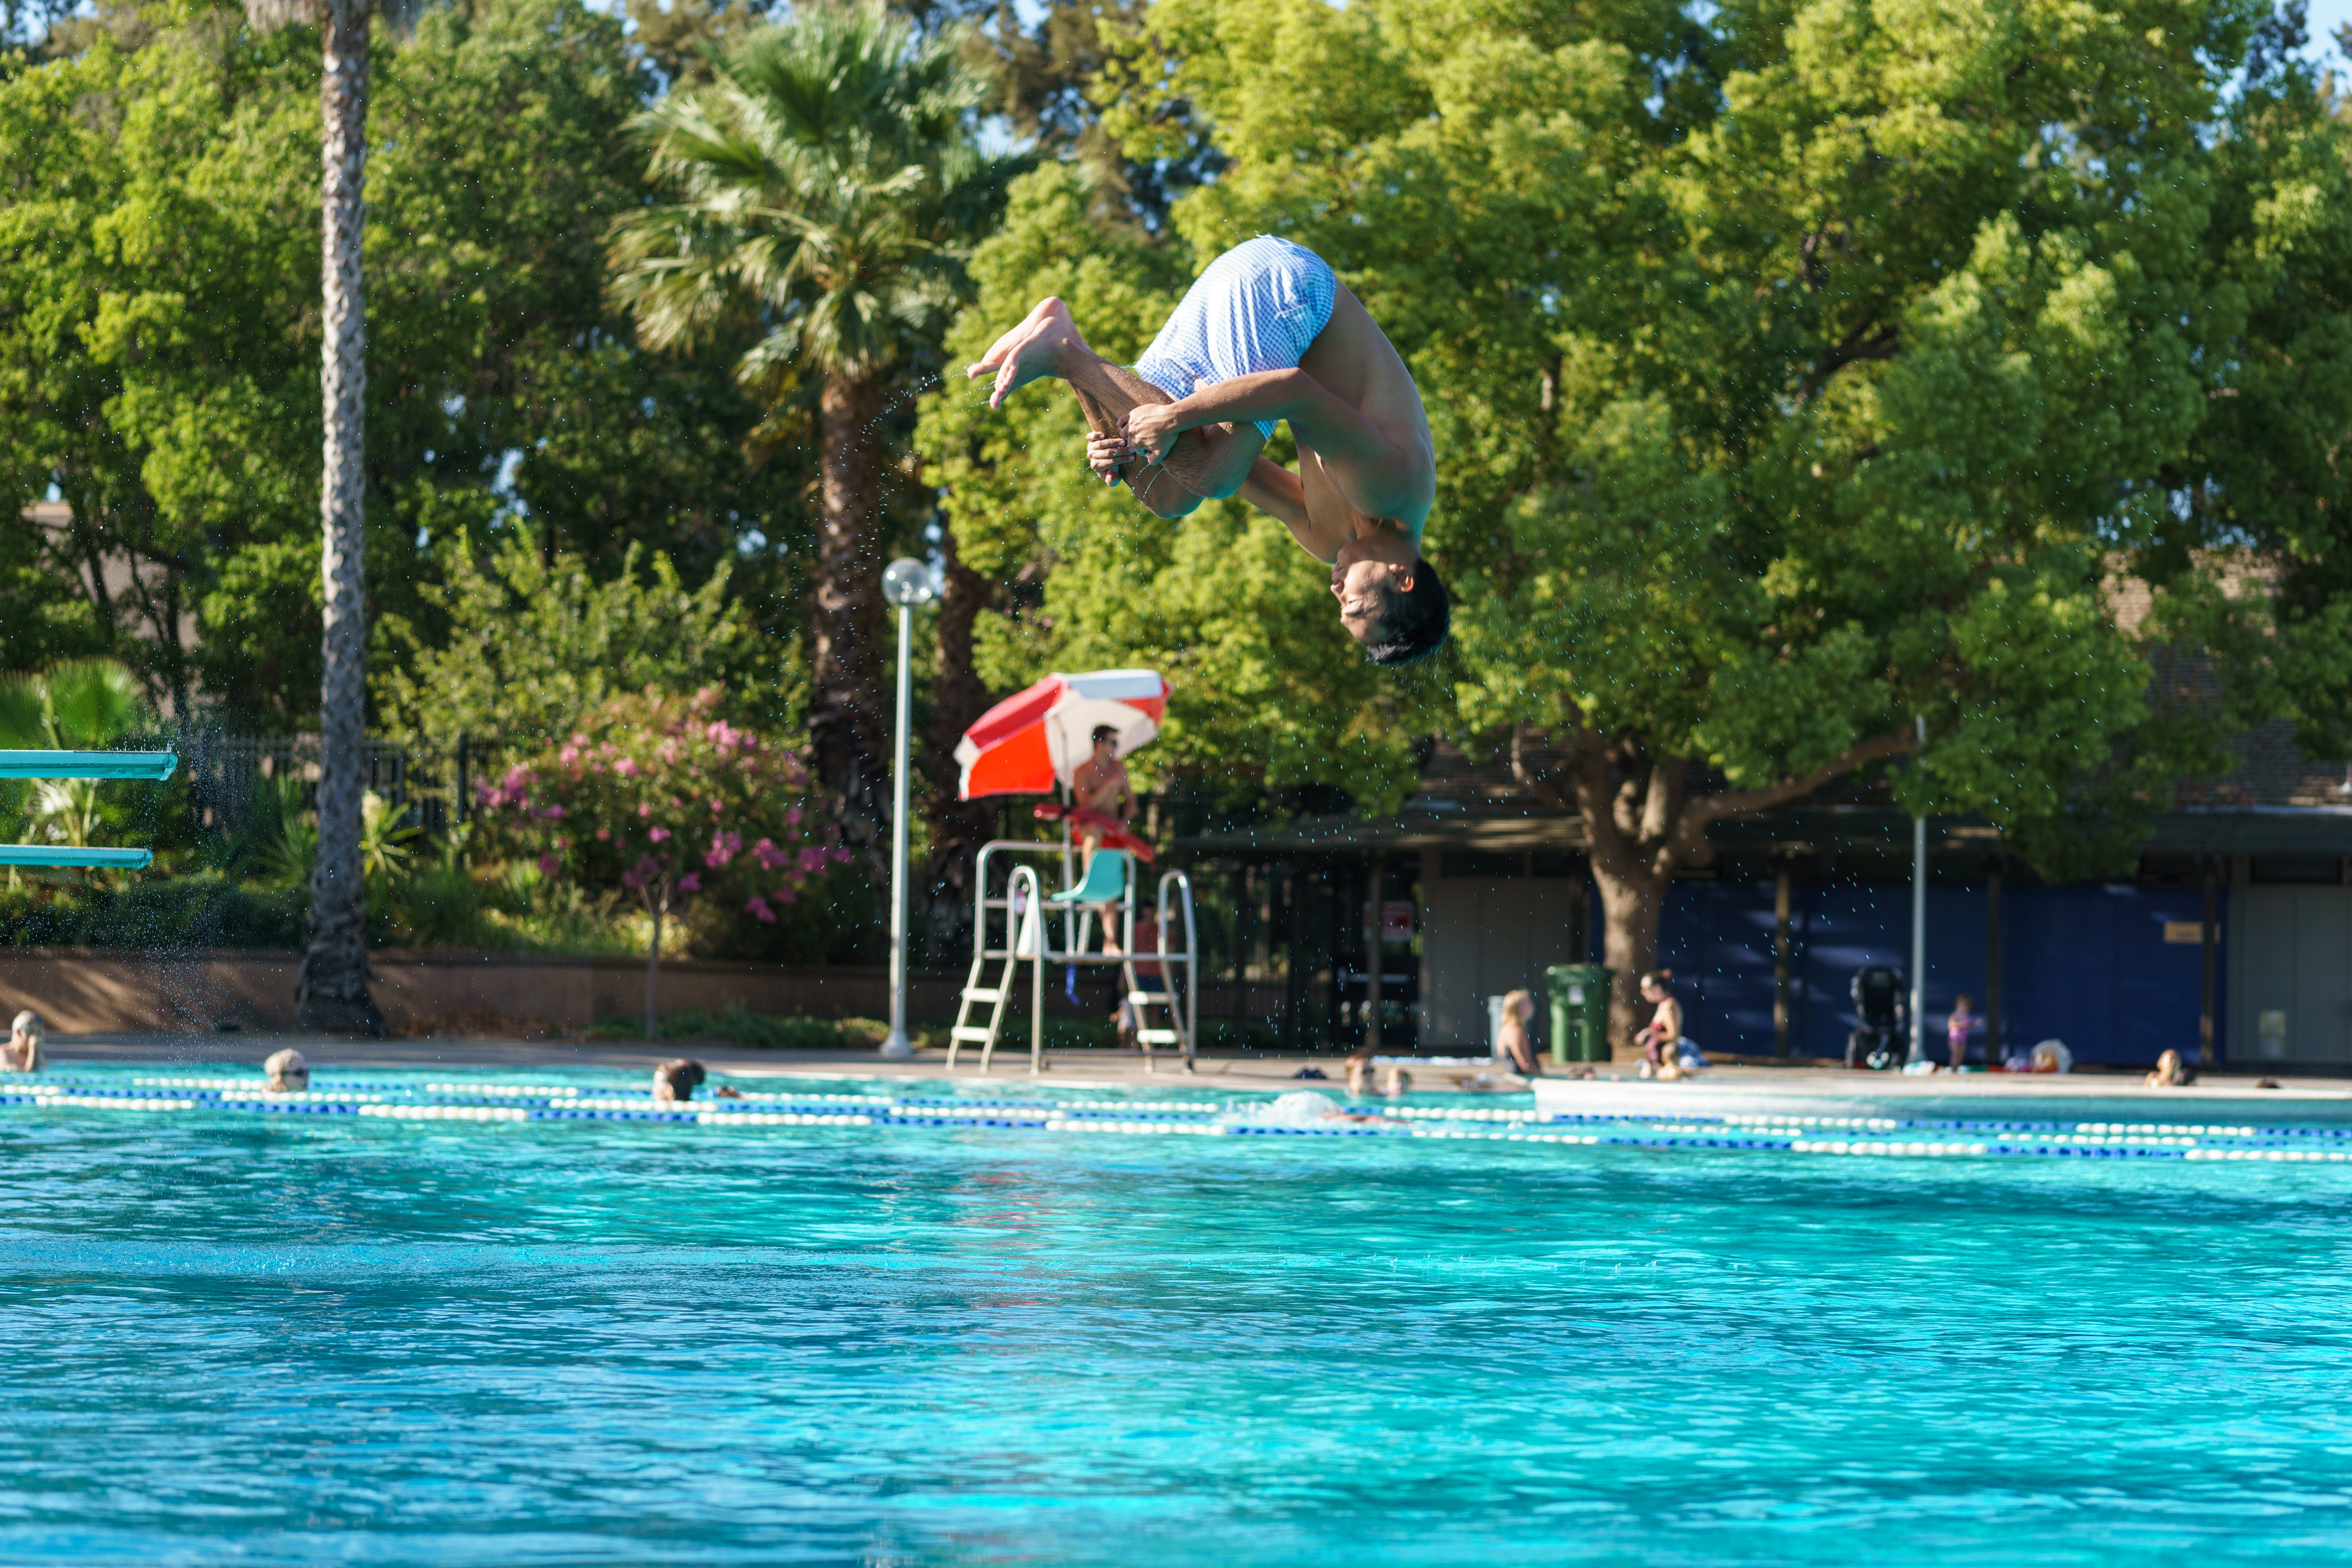 cannonball, dive, diving board